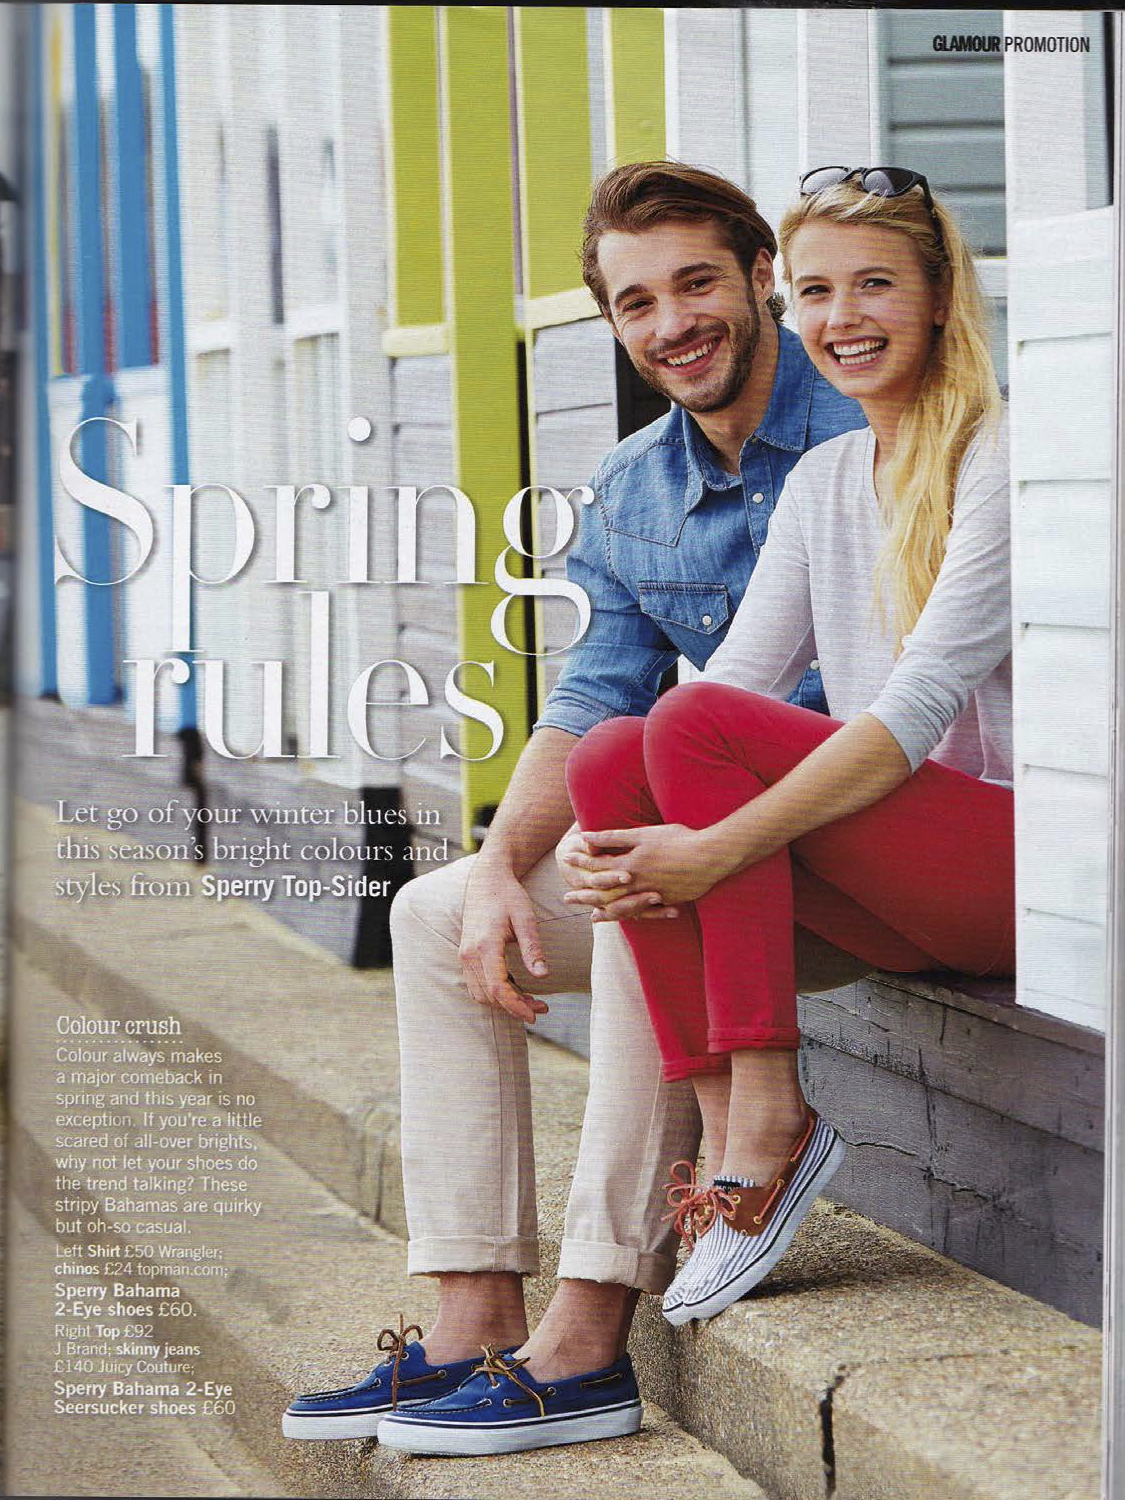 SPERRY and The Yacht Week partnership in Glamour Magazine